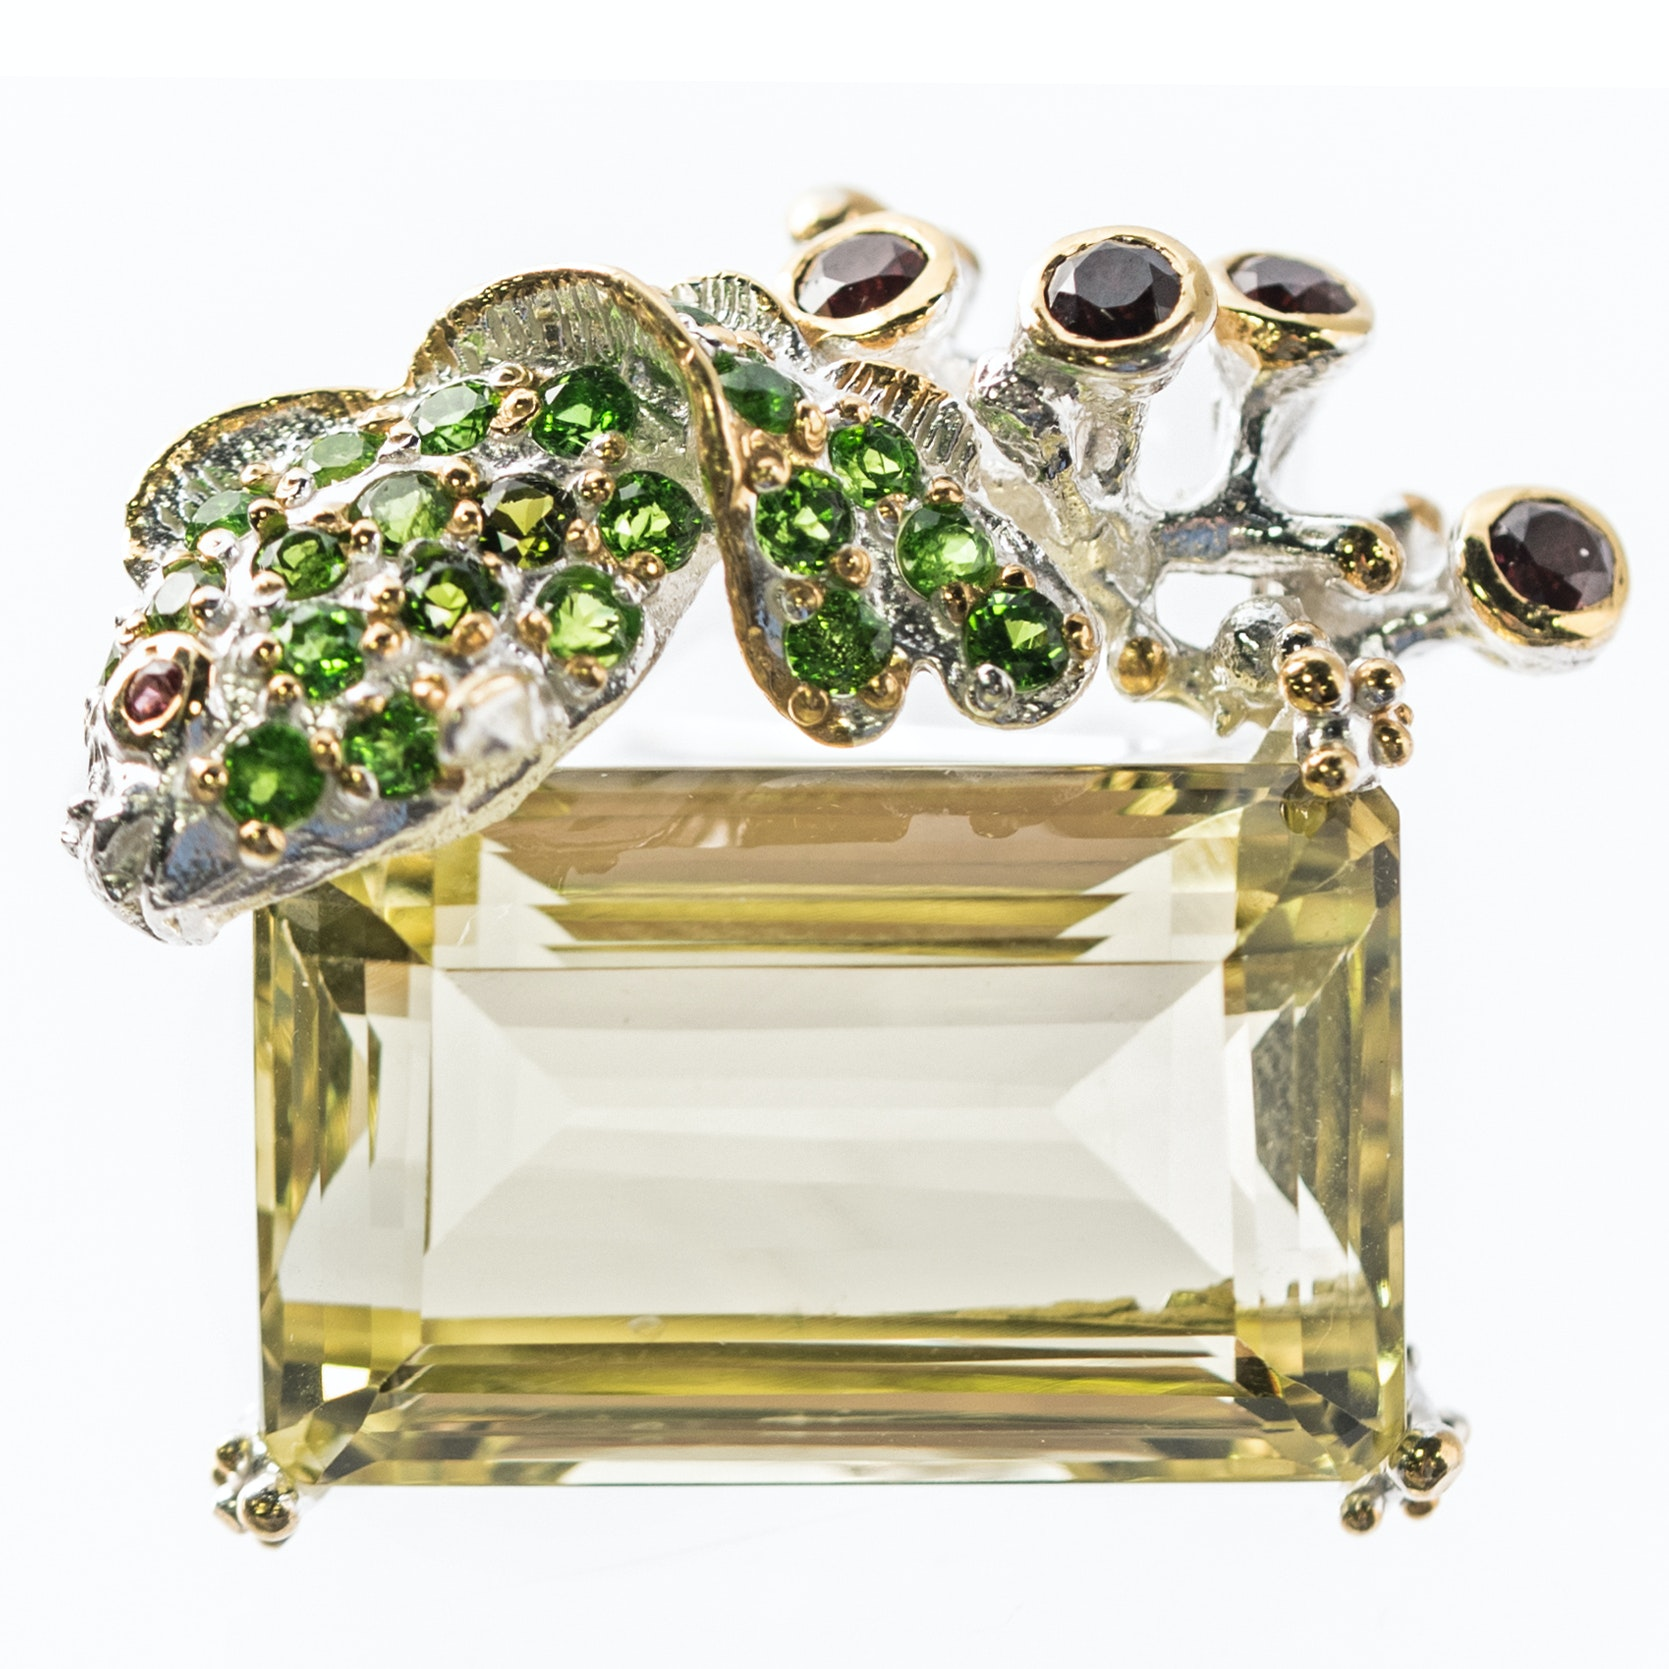 Sterling Silver, 28.18 CT Lemon Quartz, Peridot, and Garnet Fish Brooch